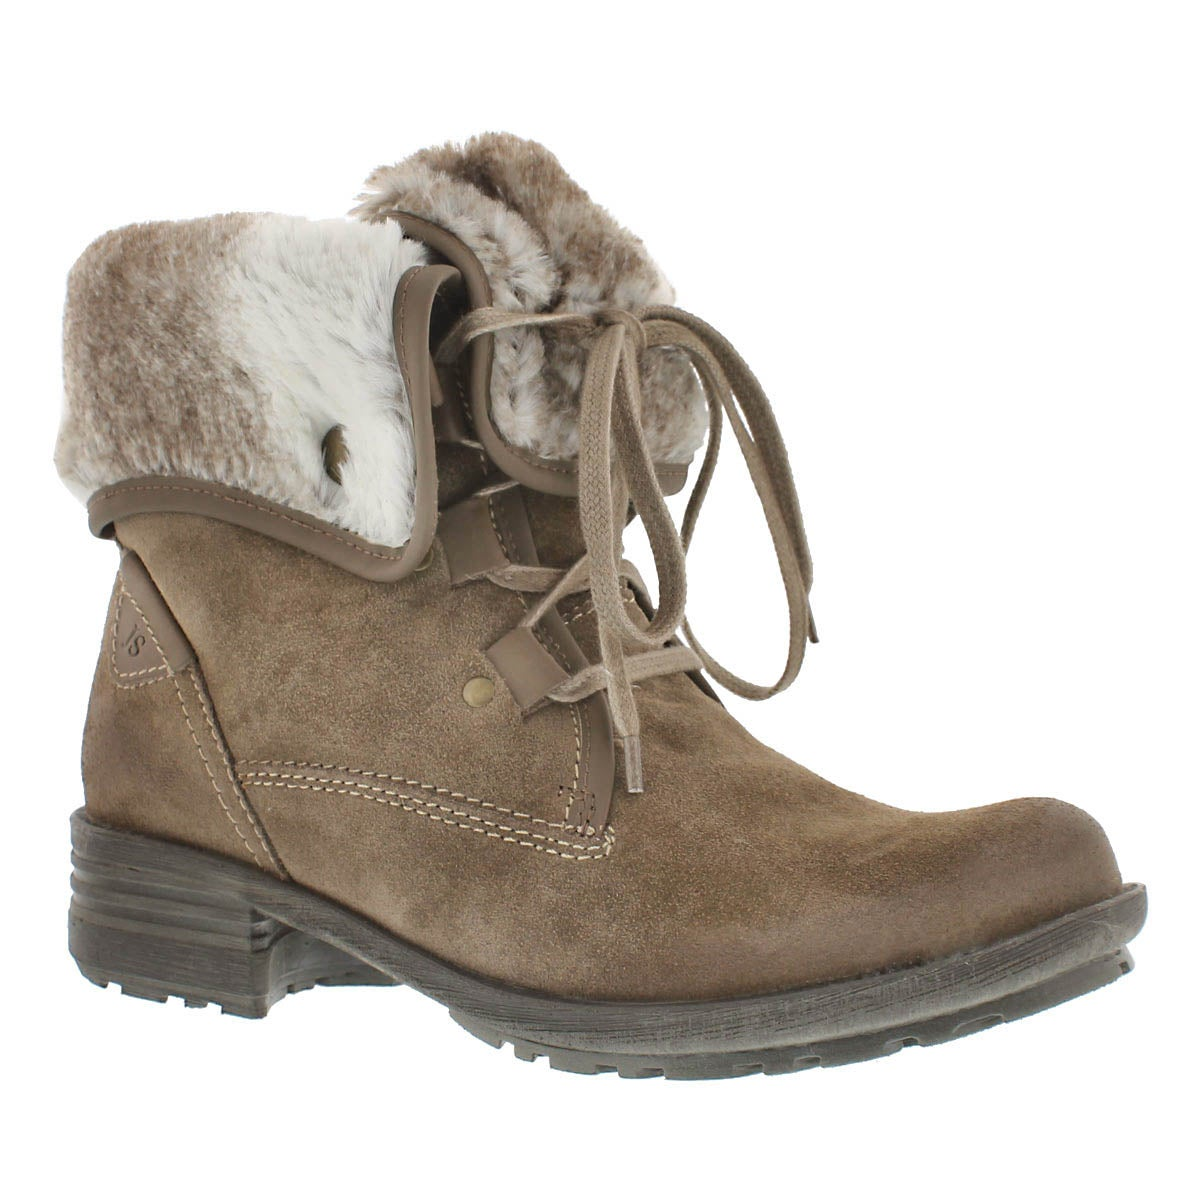 Lds Sandra 04 taupe lace-up boot